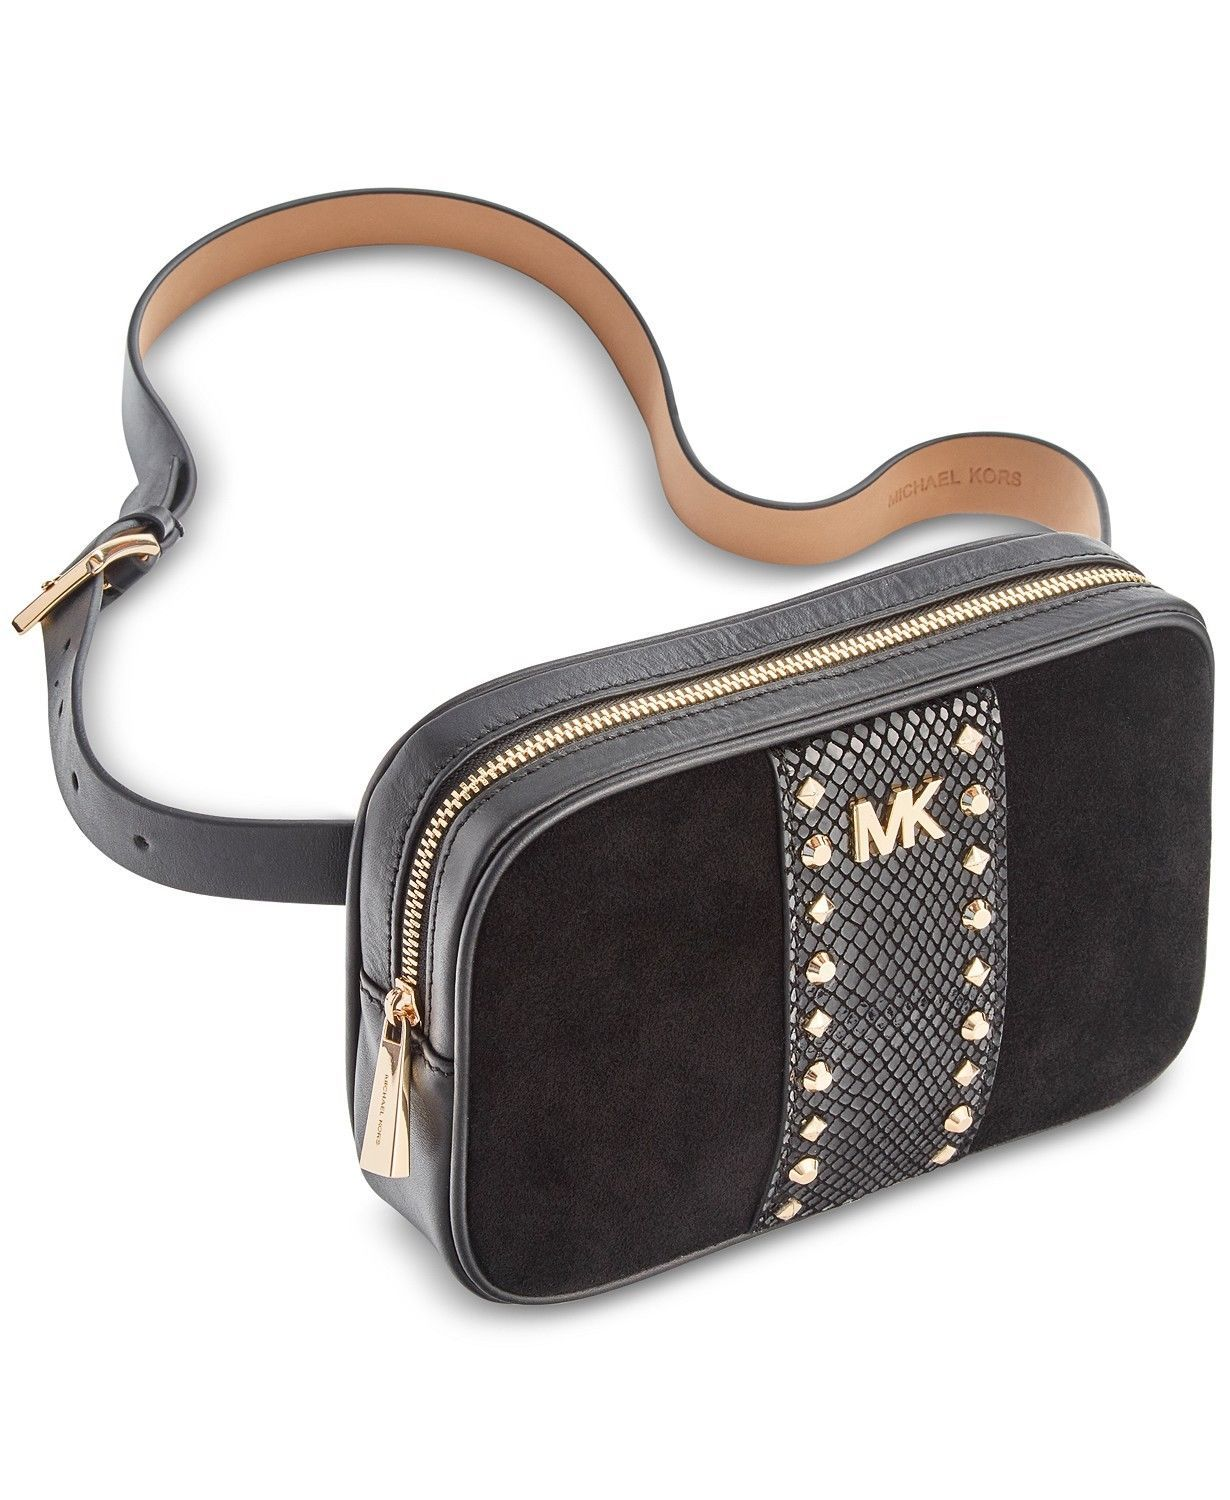 NEW Michael Kors Studded Fanny Pack Leather Suede Belt Bag S-XL Size 928b1741c6e77